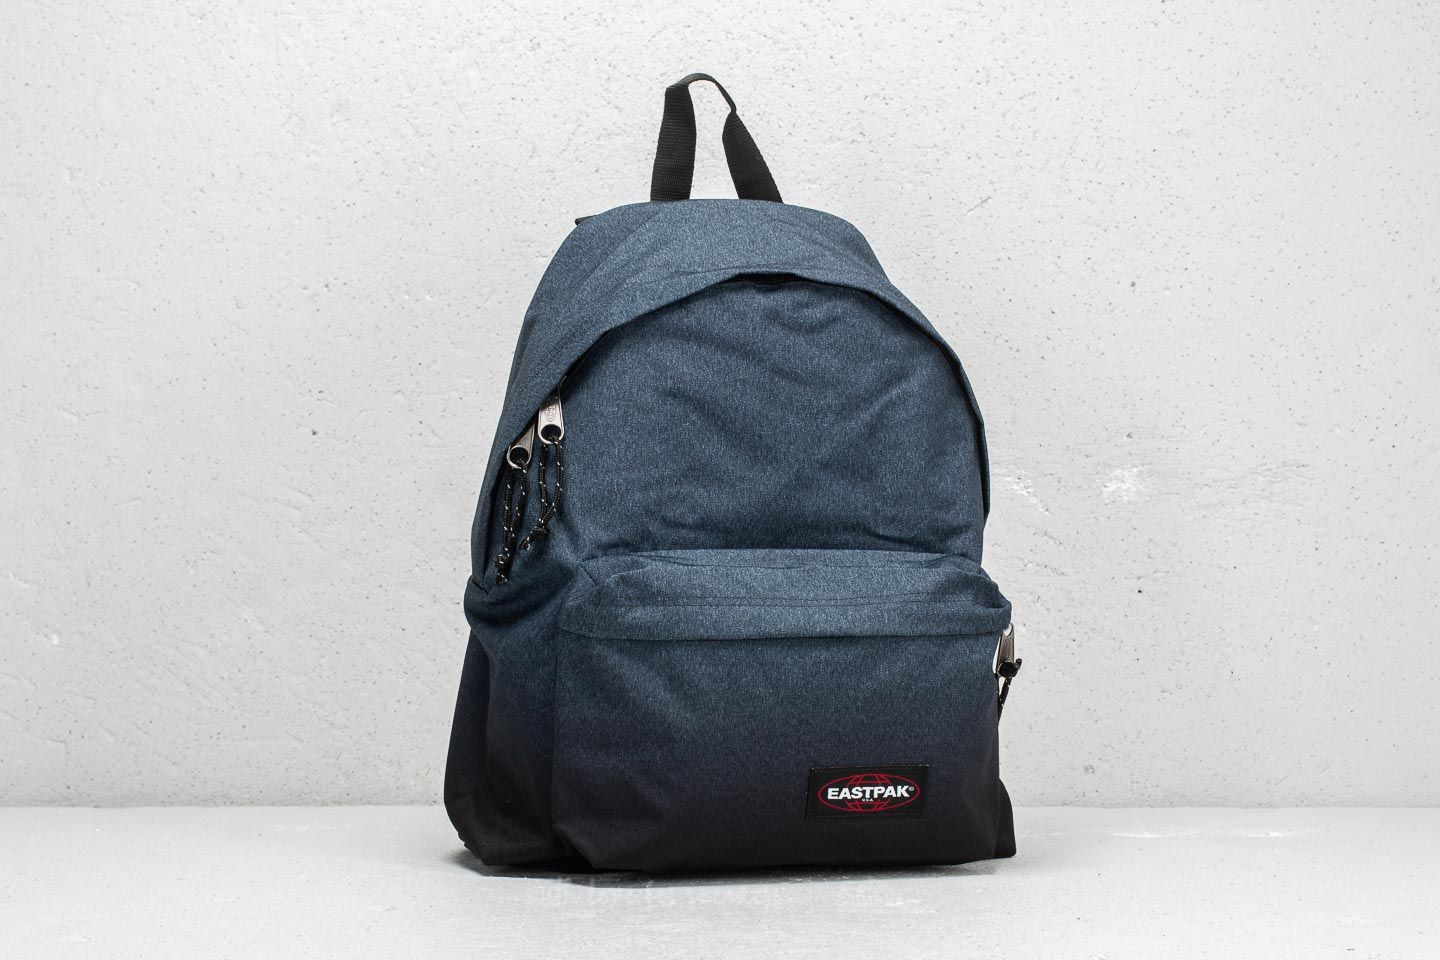 Backpack Pak'r GradientFootshop Denim Padded Eastpak 35Lq4AjR